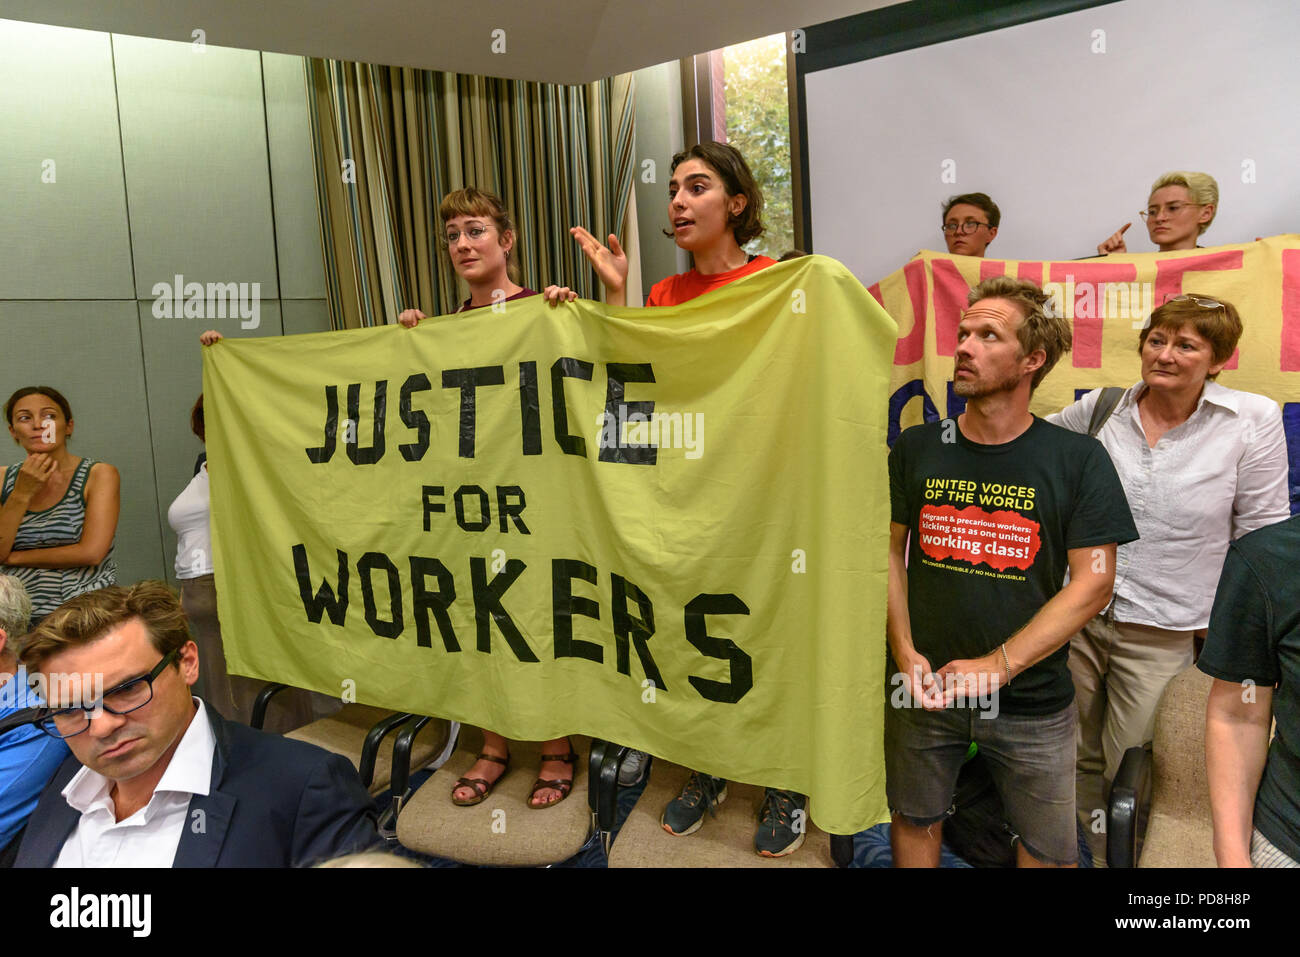 London, UK. 7th August 2018.  United Voices of the World trade union members speak in the debate after the  Kensington & Chelsea council planning committee public meeting was officially suspended.  The union were angered by the withdrawal of a promise made earlier in the day to bring the cleaners at the council back into direct employment. The meeting was suspended after his statement, with most councillors leaving and there was a short debate where a councillor and several members of the public spoke supporting the cleaners; the protesters left after Councillor Catherine Faulks gave a promise Stock Photo